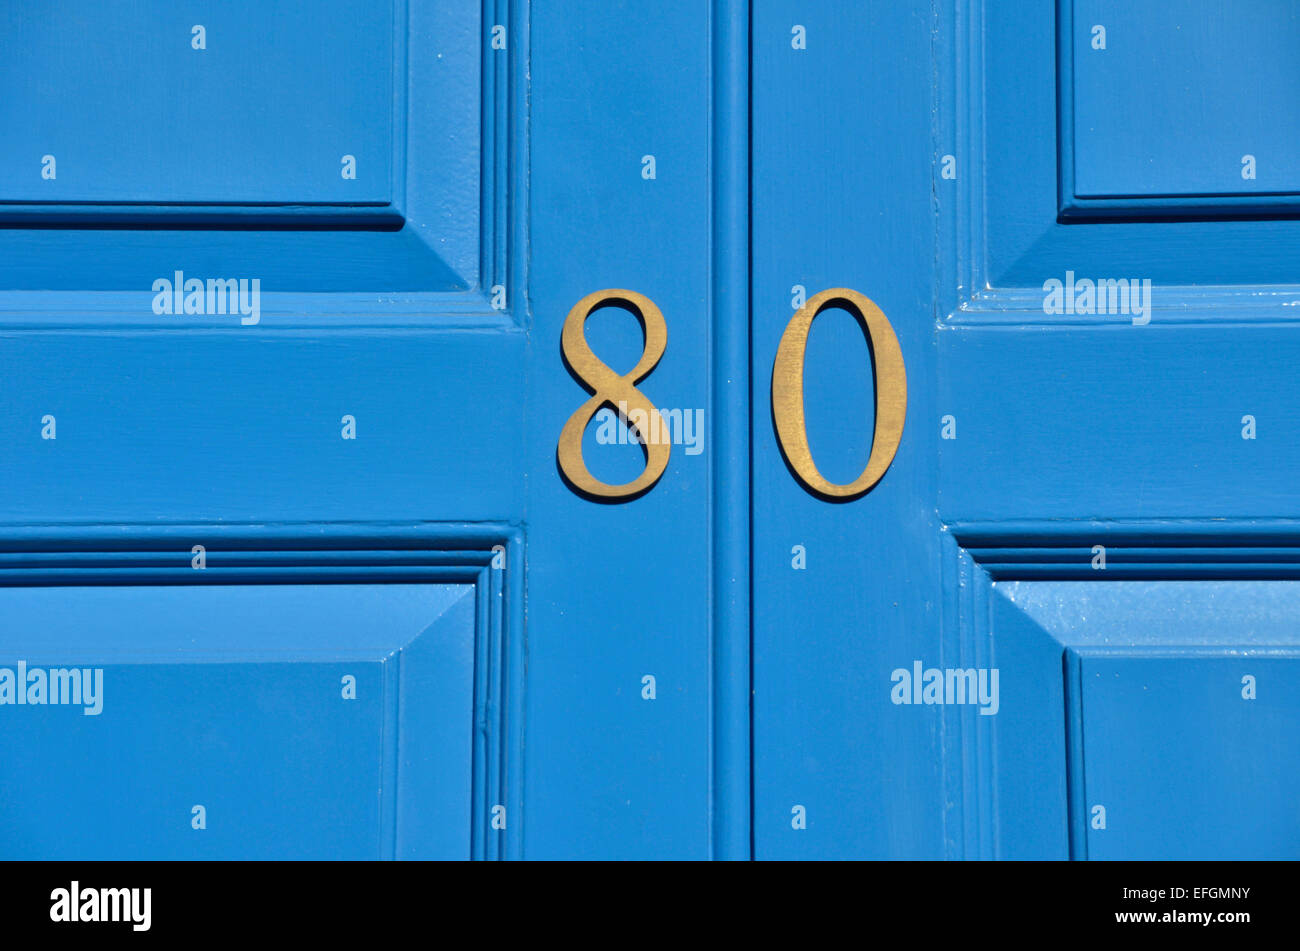 The number 80 on a blue wooden door - Stock Image